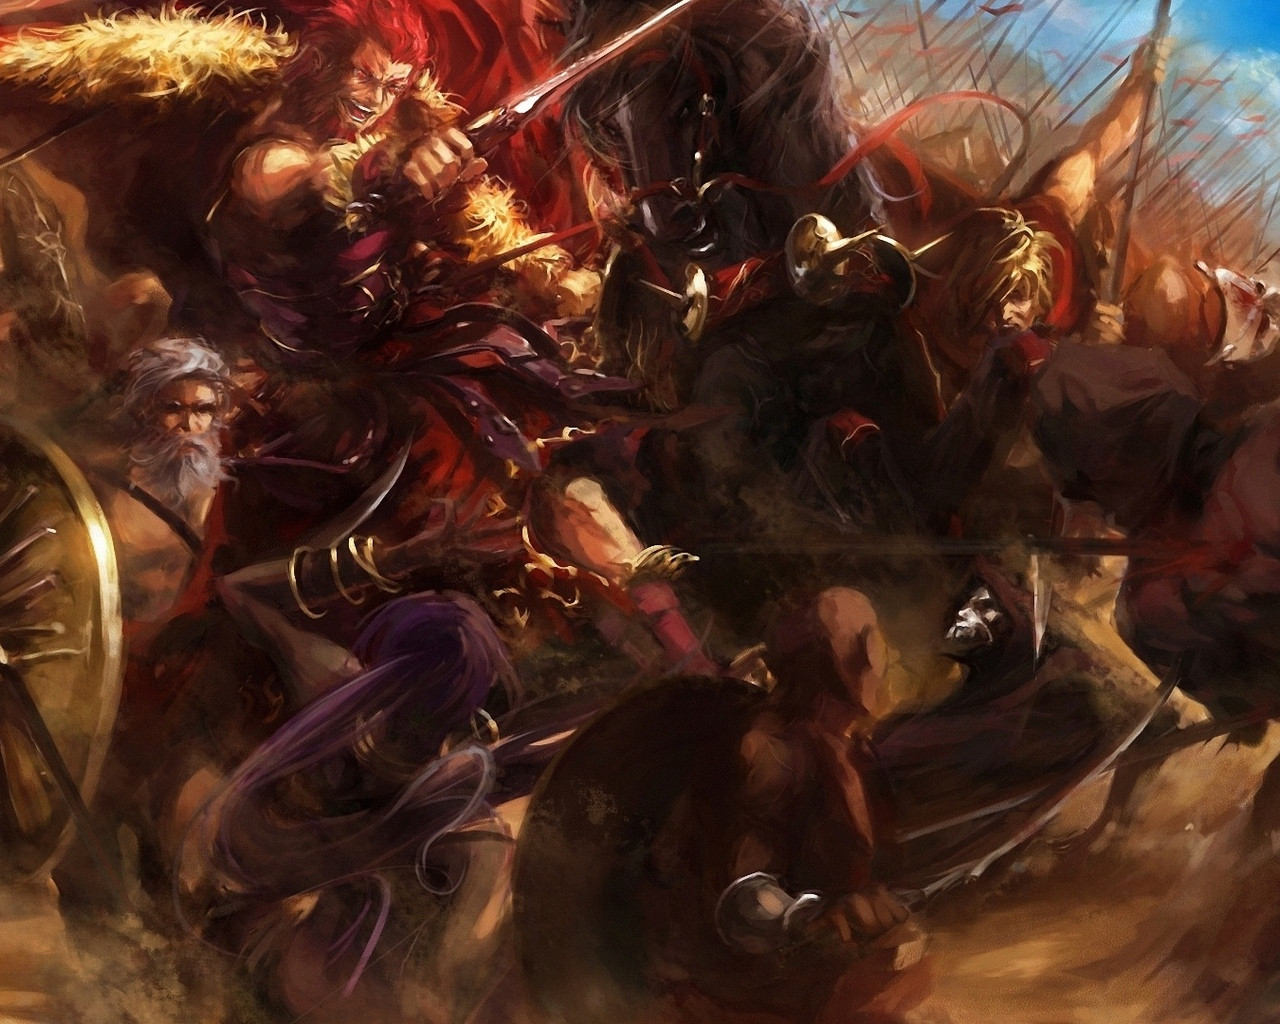 assassin, stu dts, rider , оружие, битва, войны, fate zero, арт, fate stay night